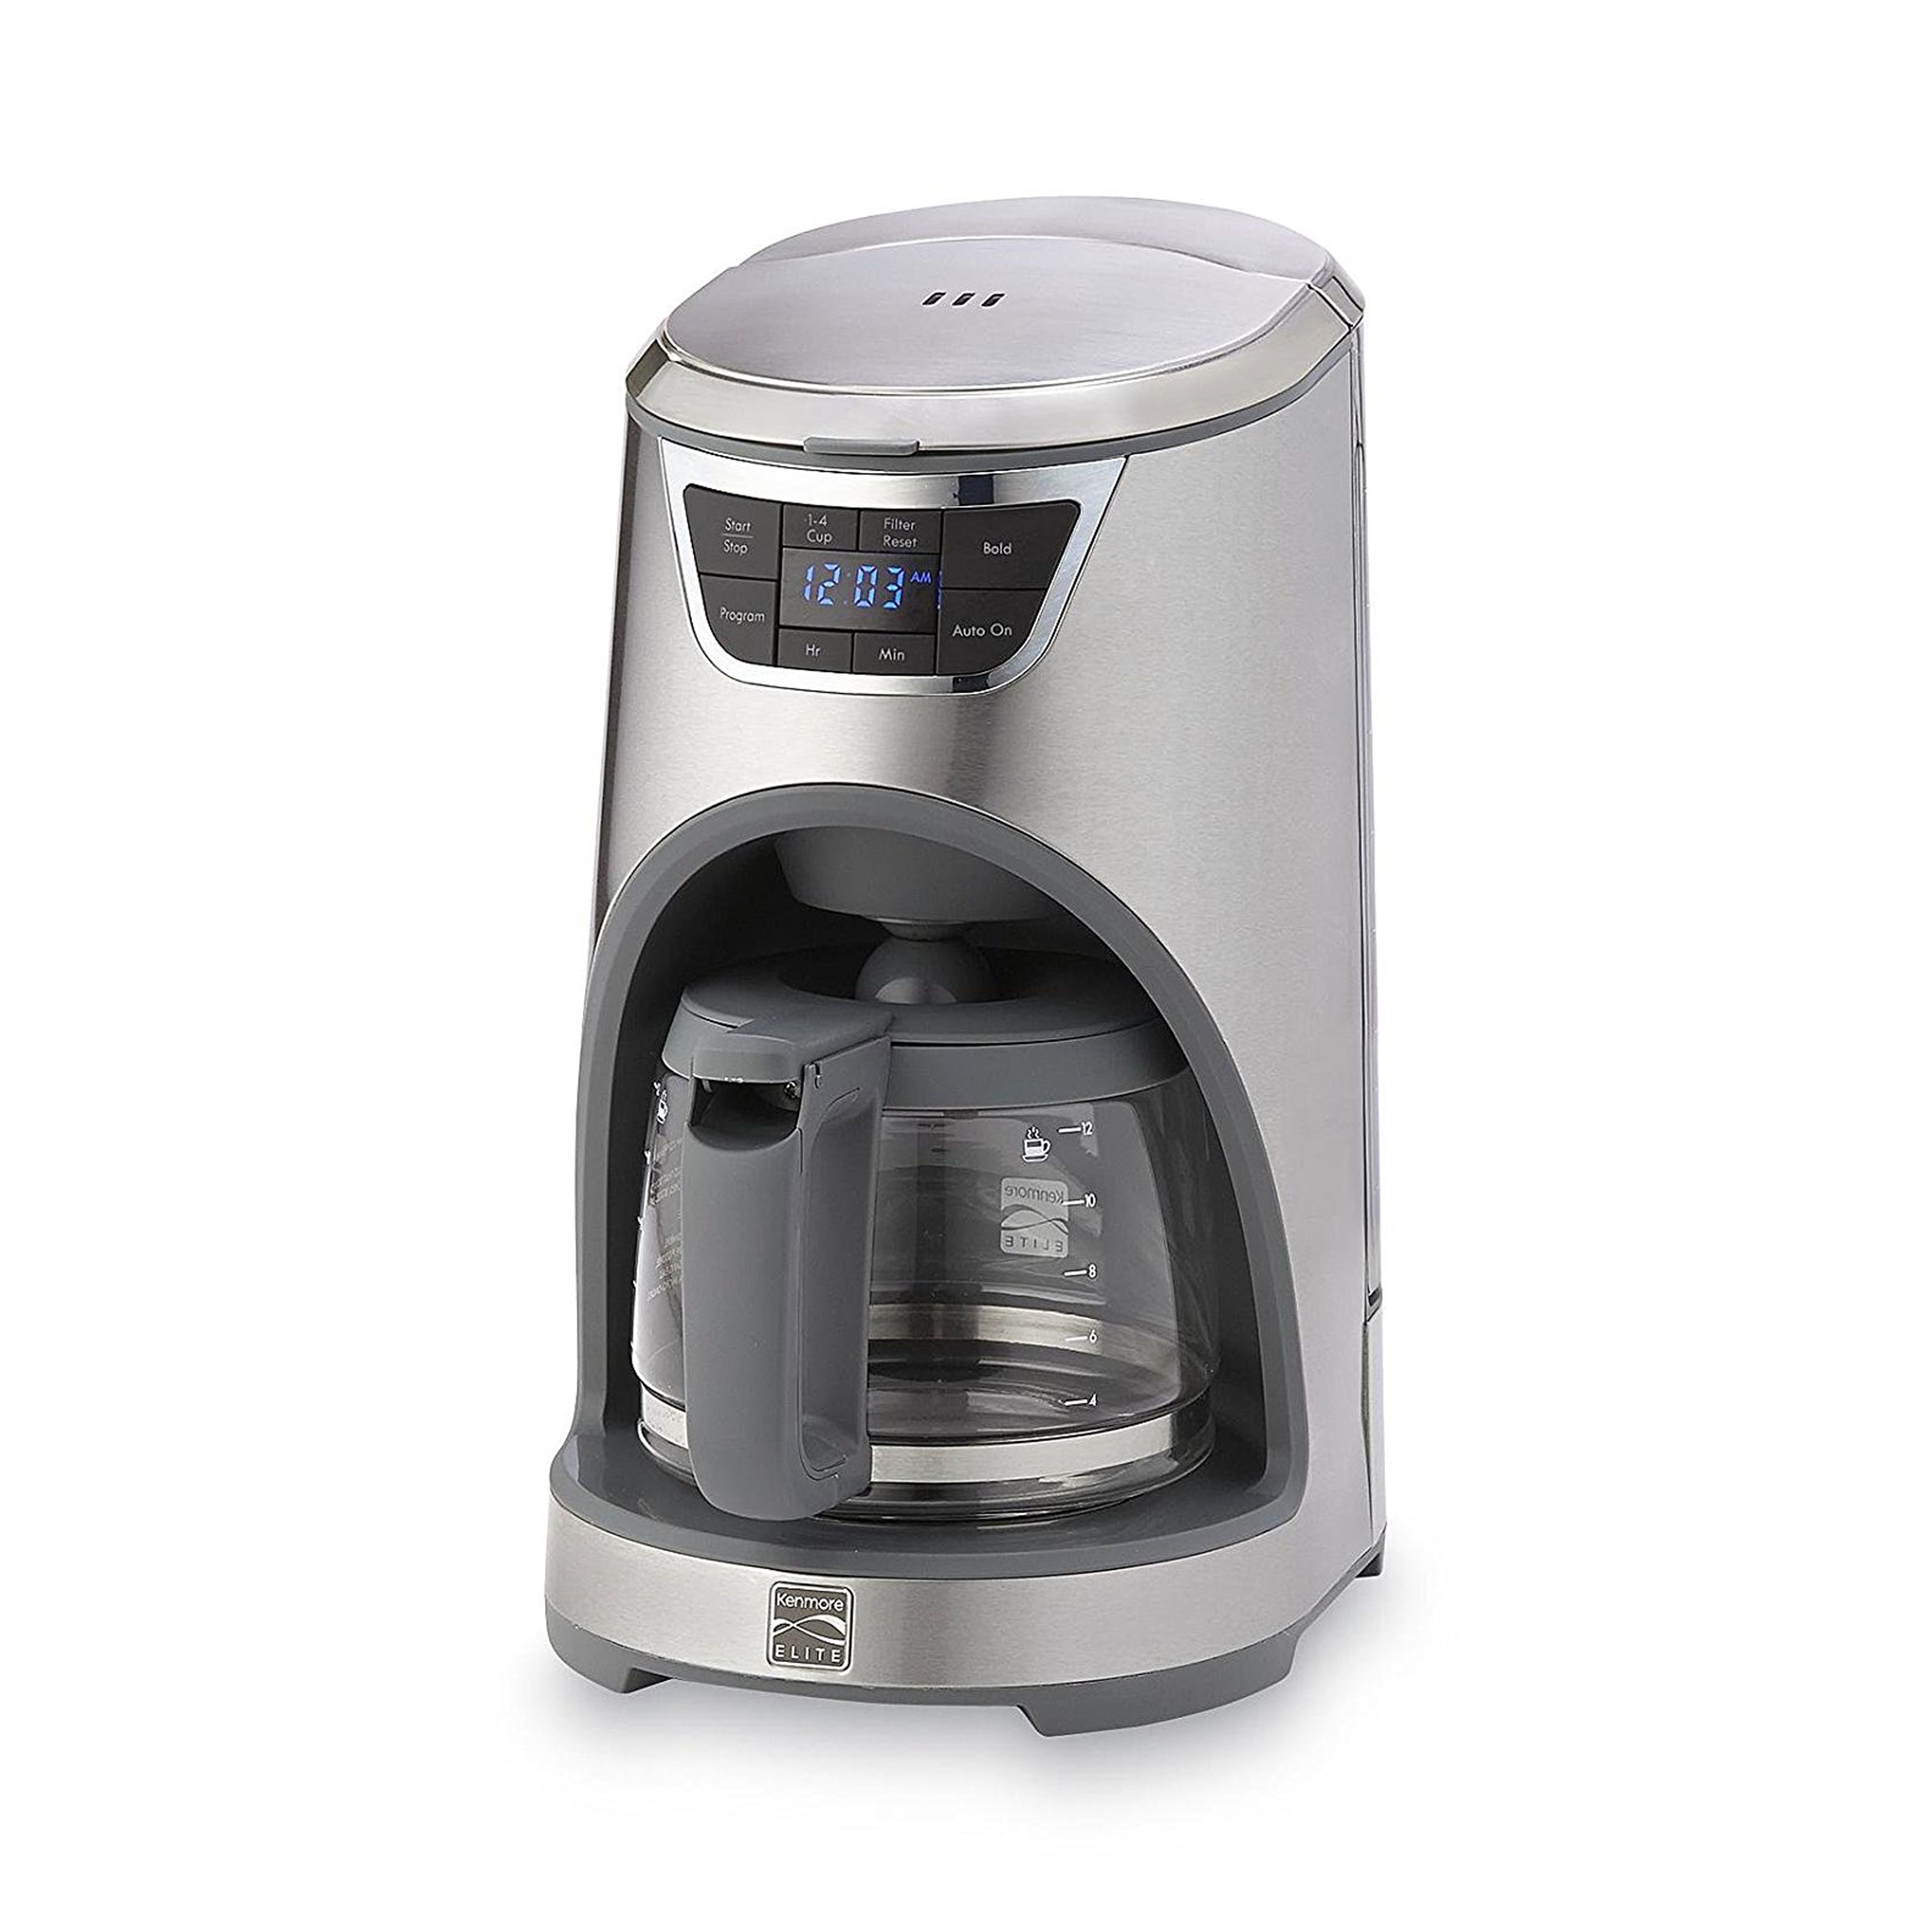 kenmore elite drip coffeemaker review price and features rh goodhousekeeping com Sears Kenmore Coffee Makers kenmore elite coffee maker grinder manual